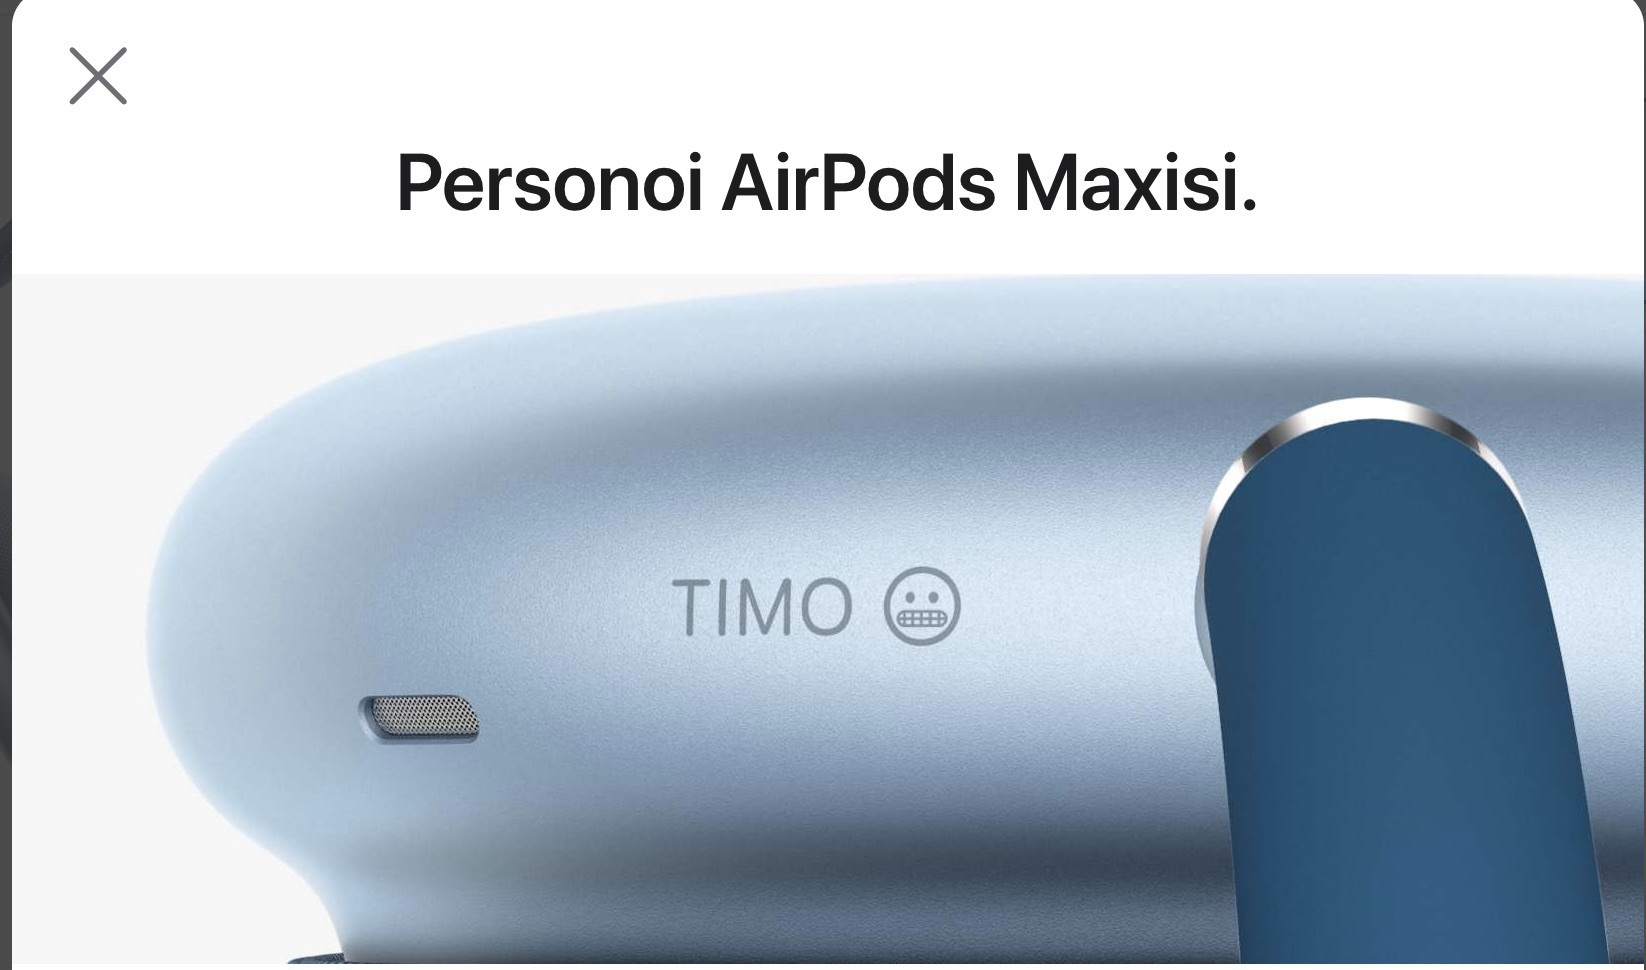 """Airpods Max personalization page with text """"Timo"""" and a grimacing emoji"""